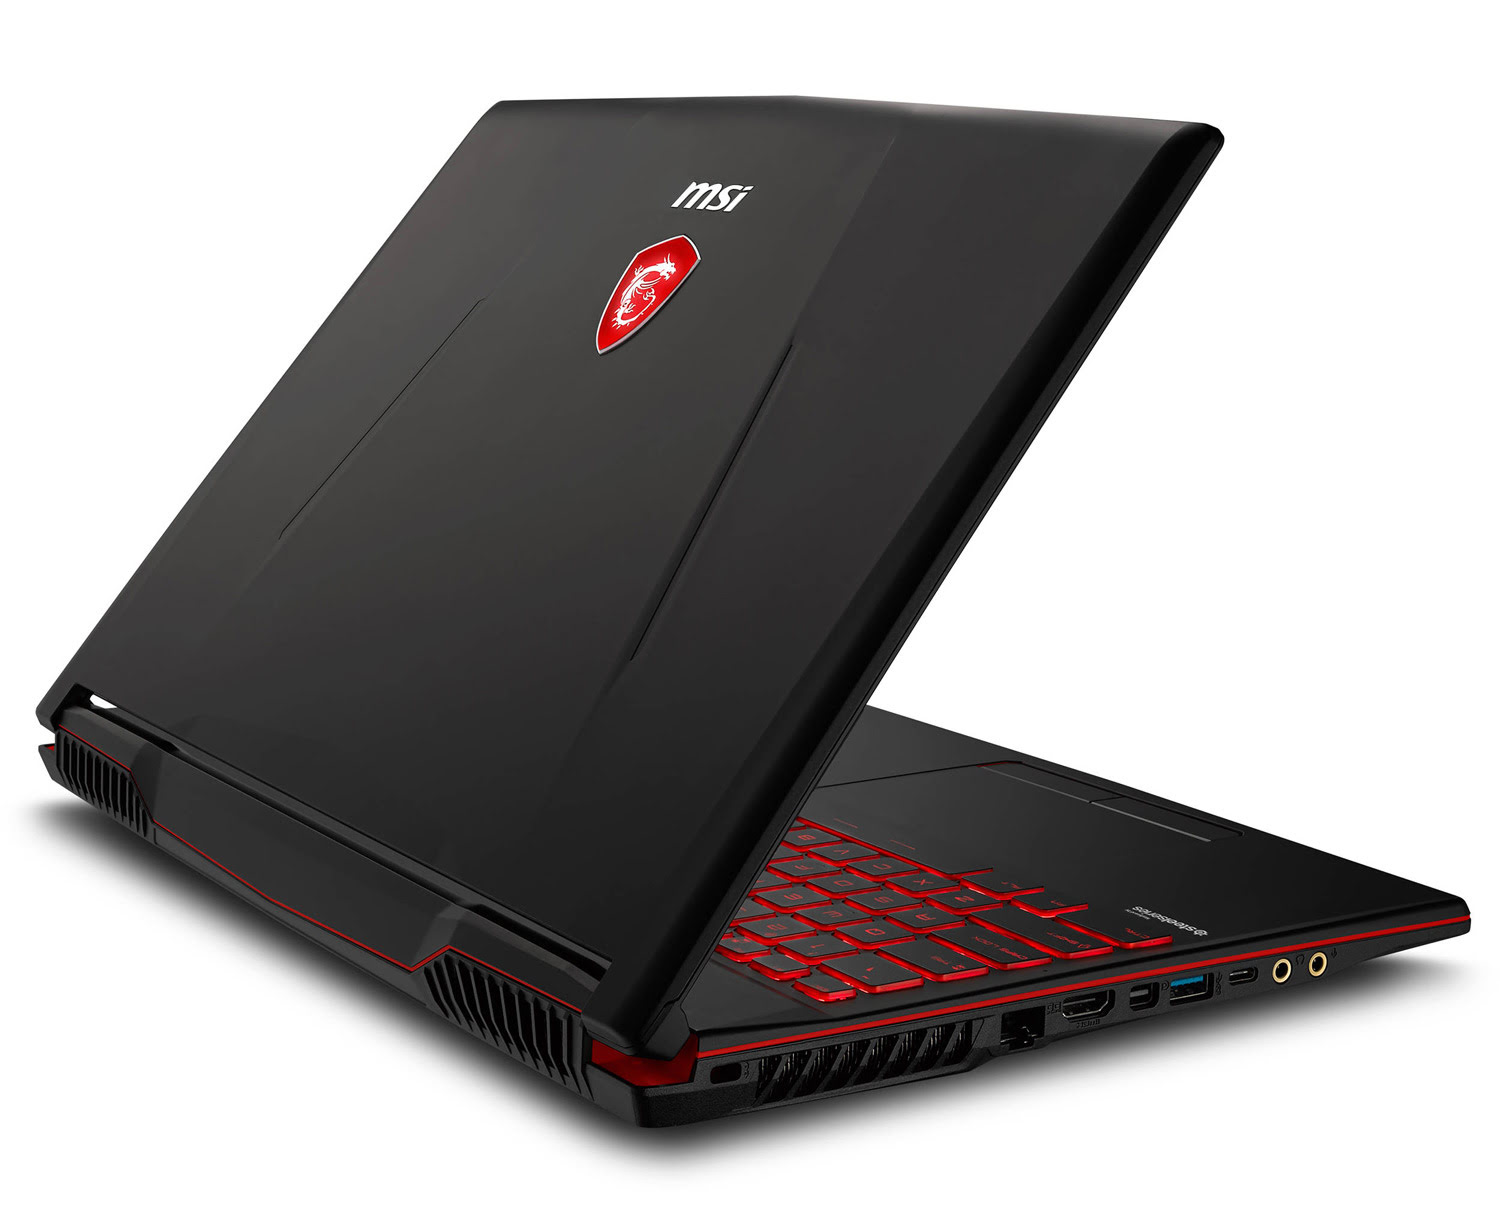 MSI 9S7-16P732-462 - PC portable MSI - Cybertek.fr - 2